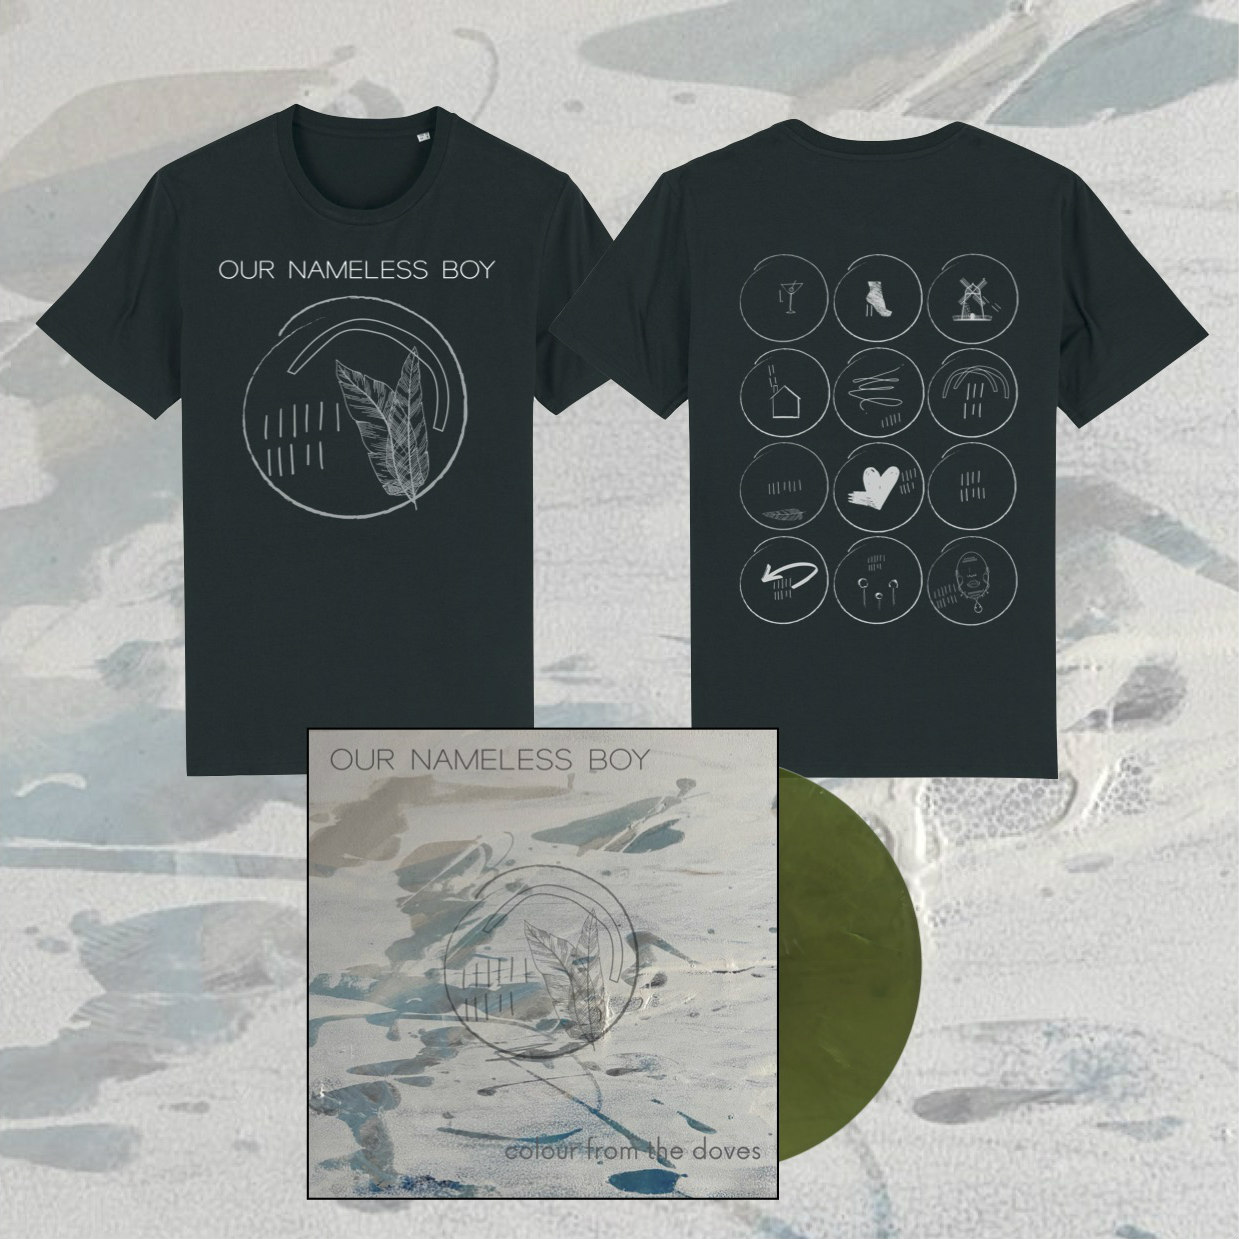 Our Nameless Boy - Colour From The Doves Shirt + LP